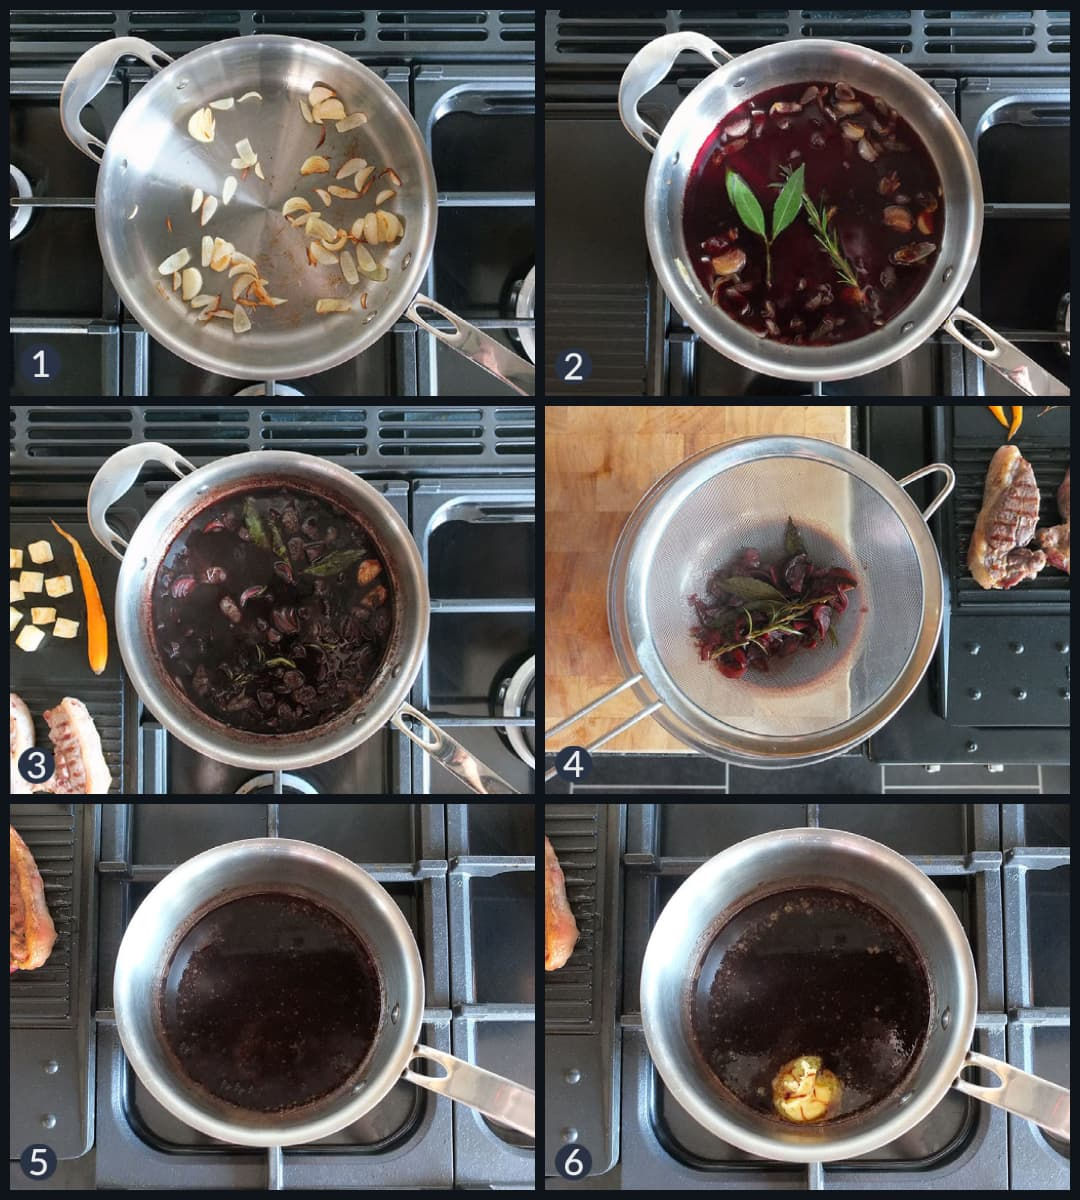 Six step collage image how to make red wine jus.